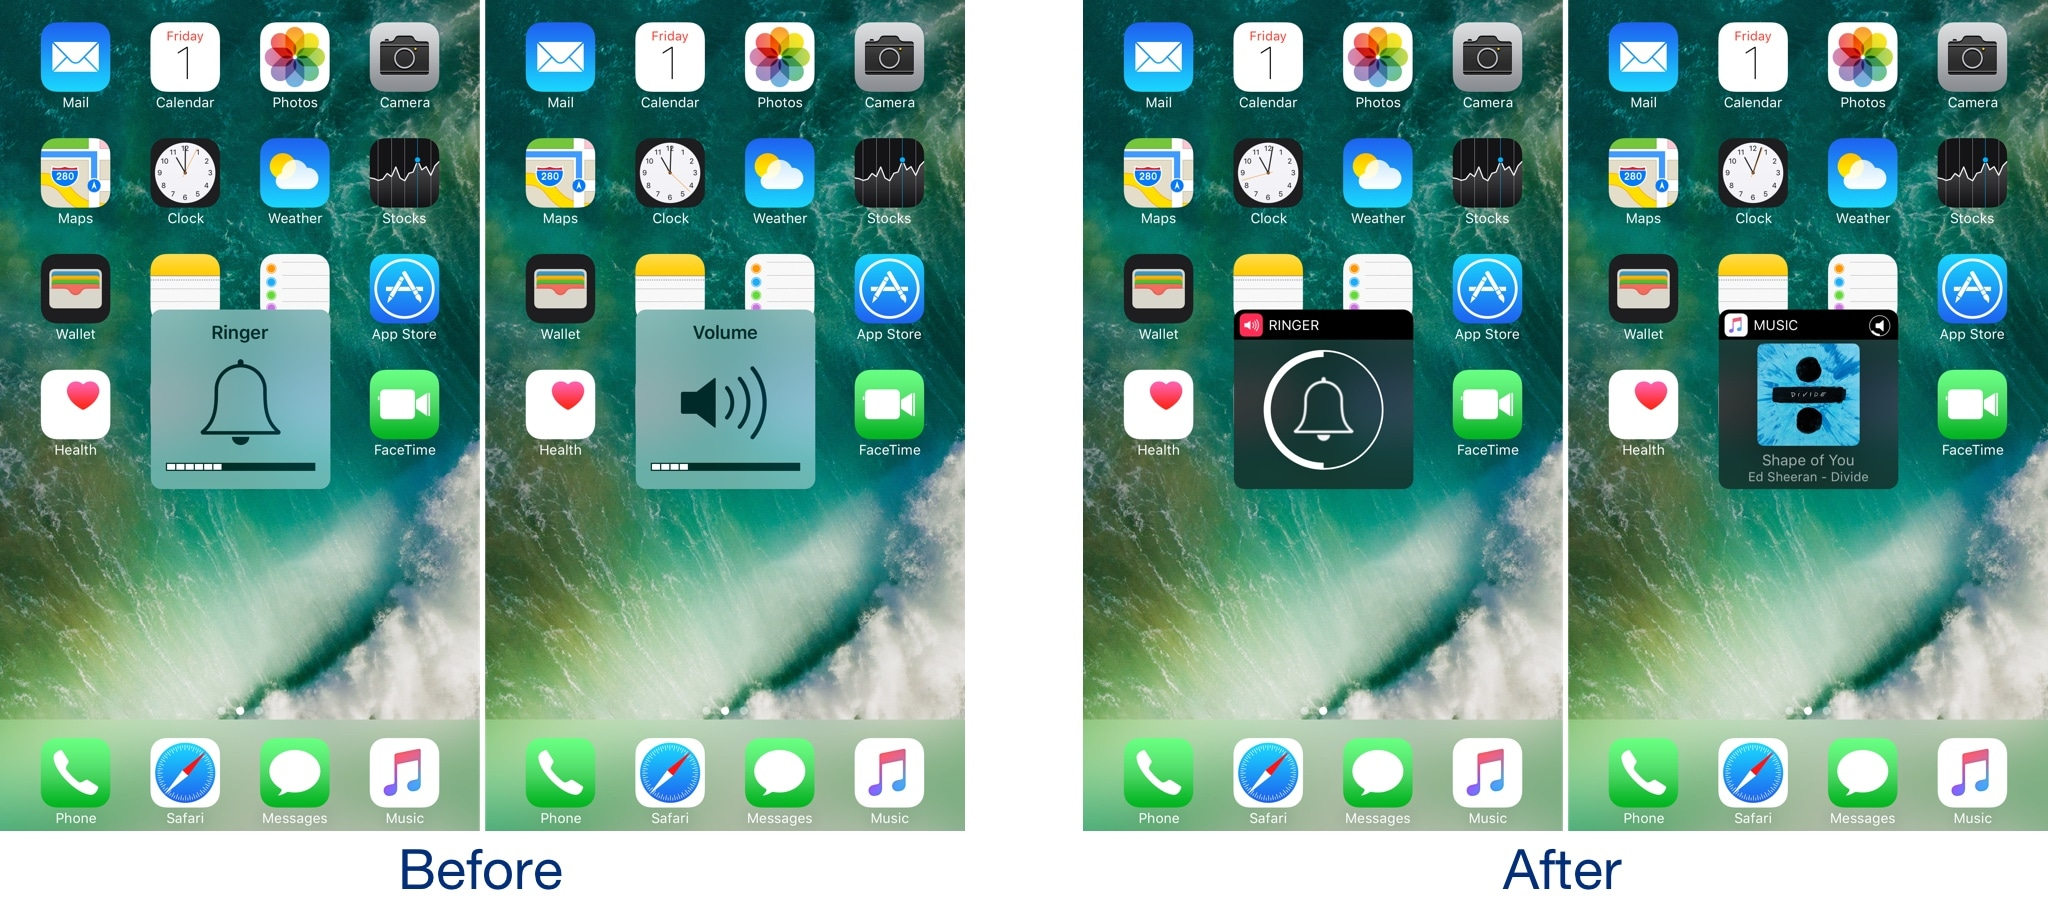 Castro gives the iOS volume HUD a much-needed facelift